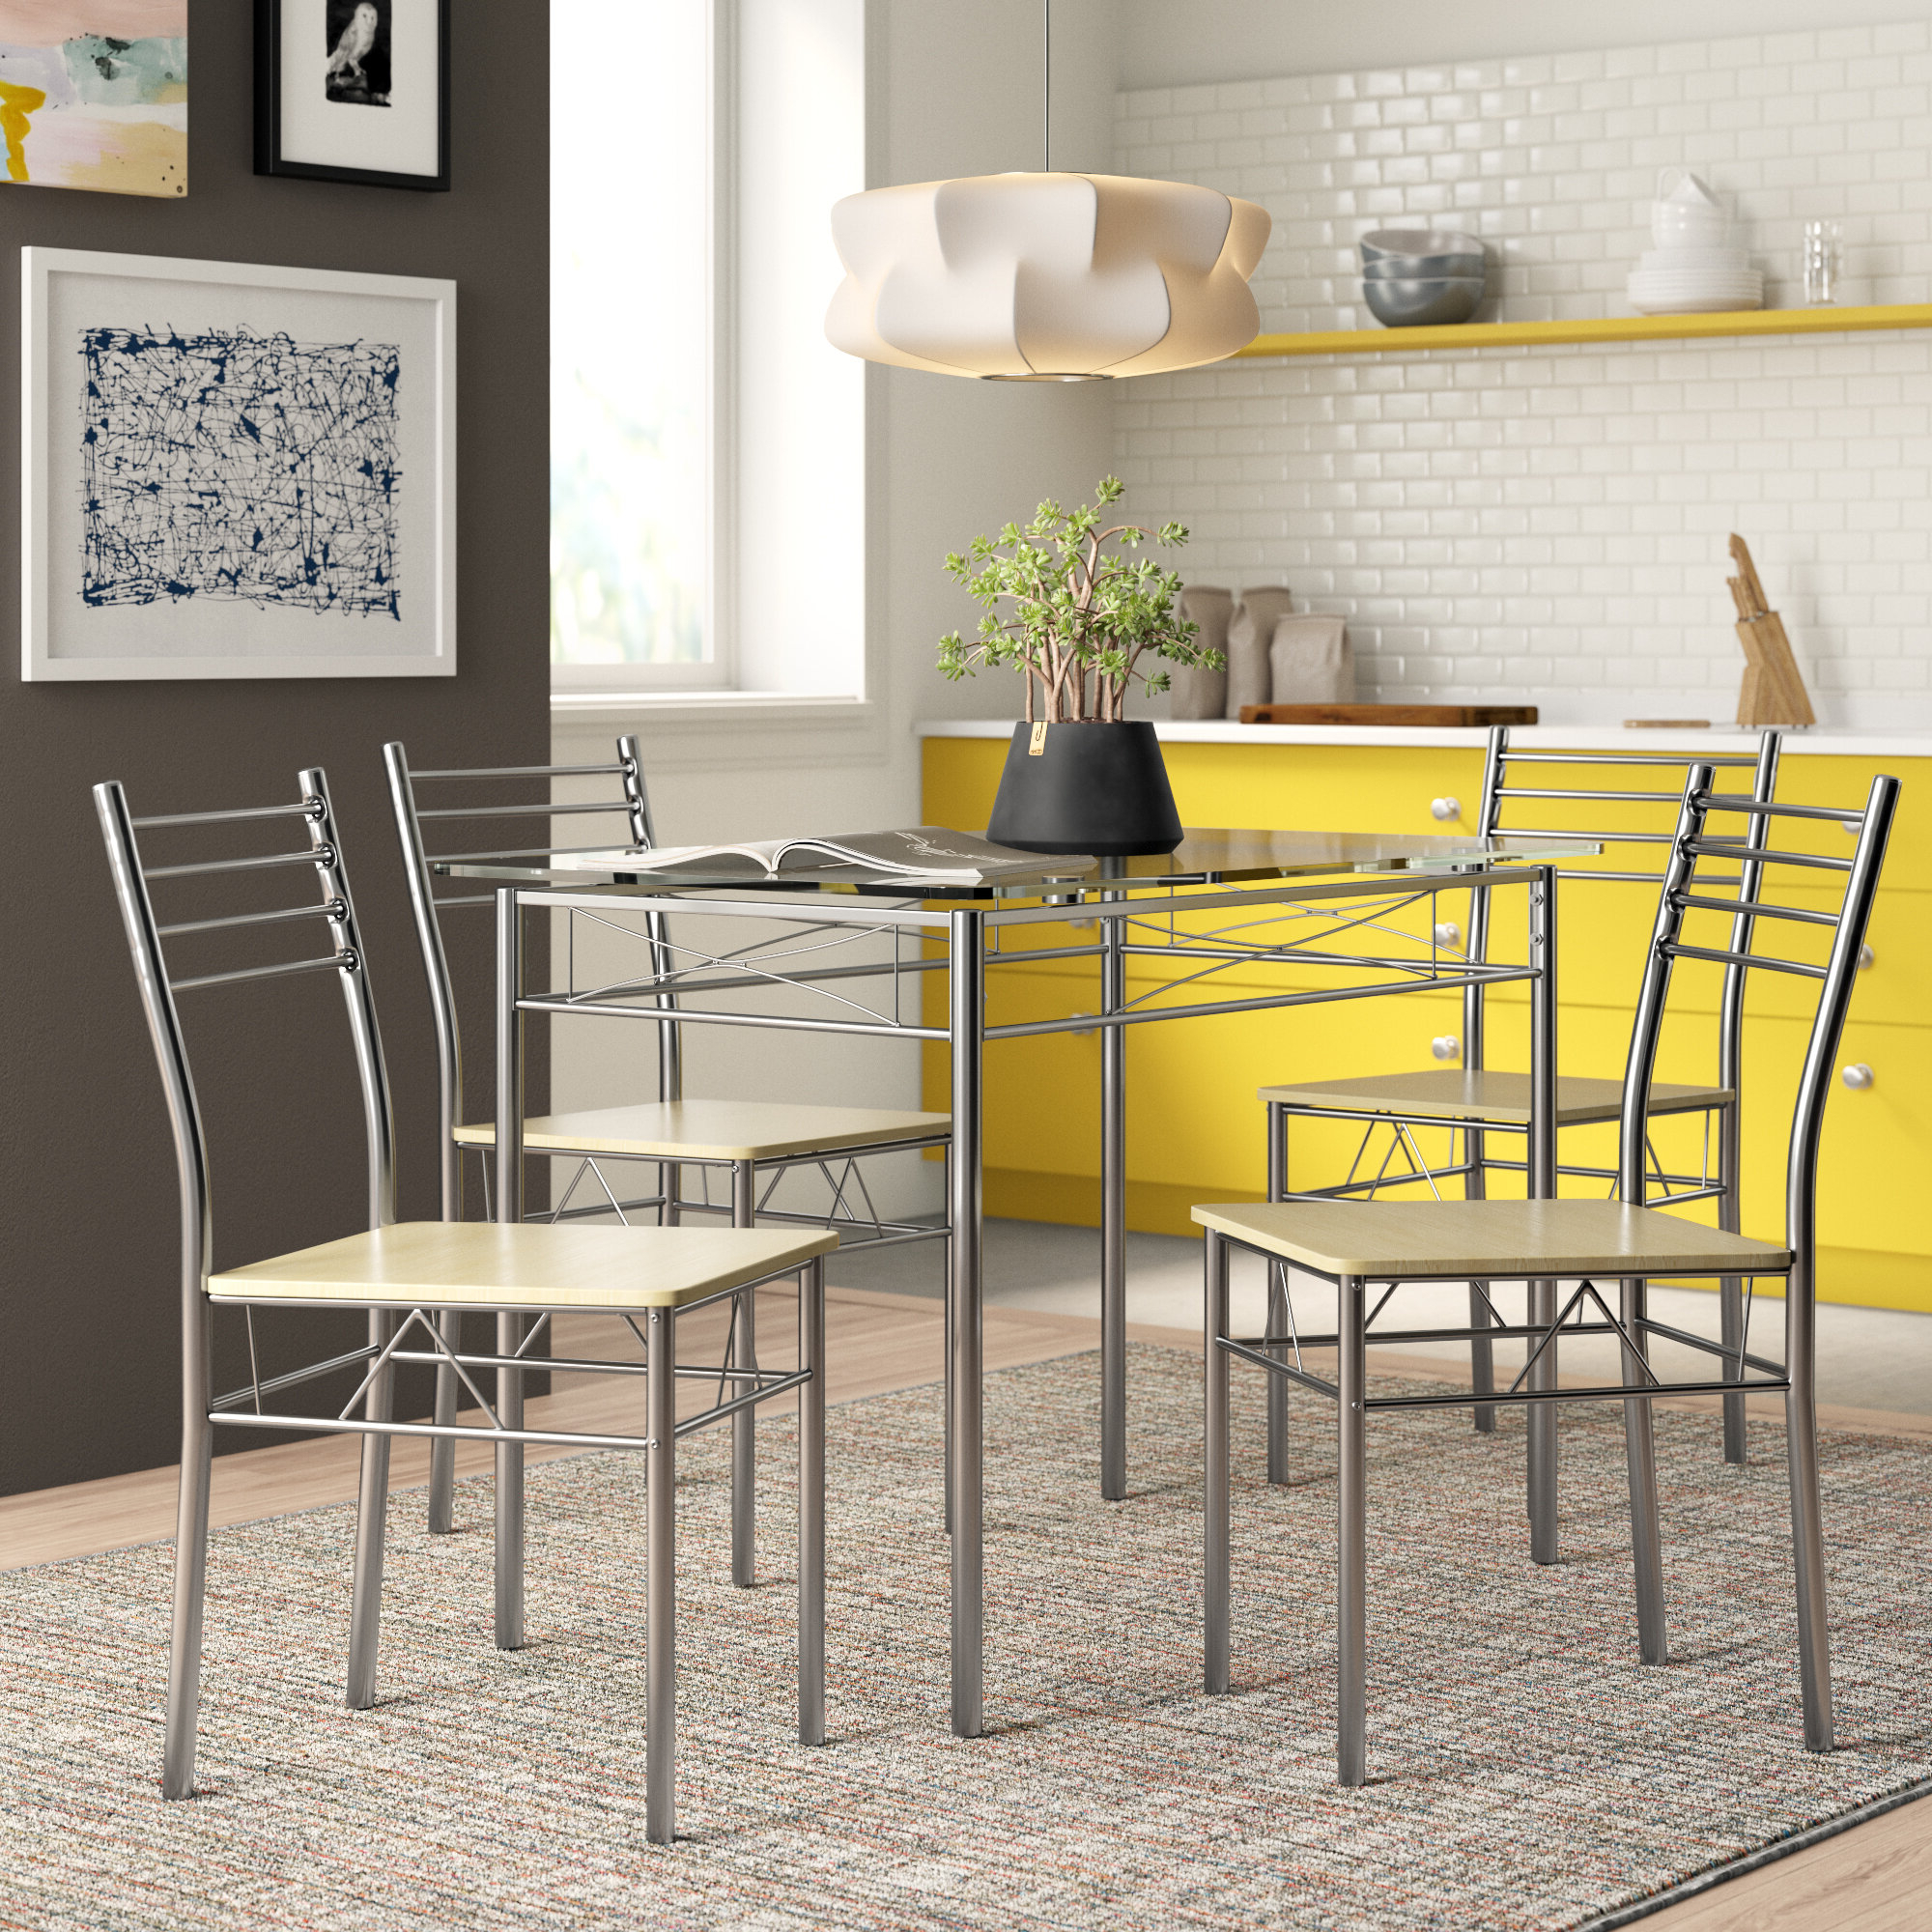 Fashionable Taulbee 5 Piece Dining Sets Intended For North Reading 5 Piece Dining Table Set (View 6 of 20)